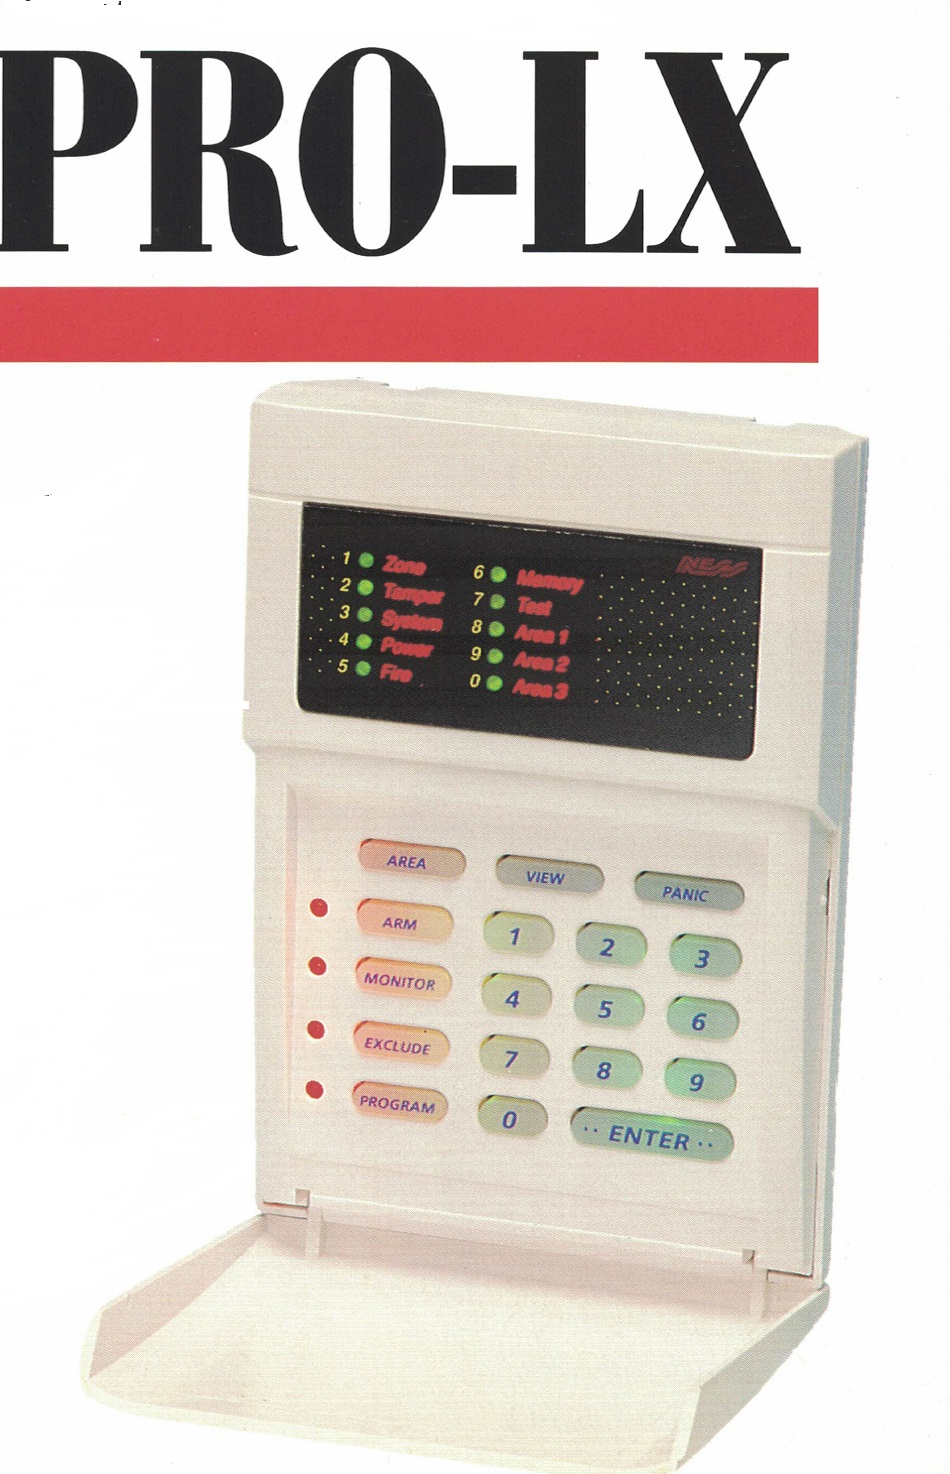 alarm repairs ness prolx keypad